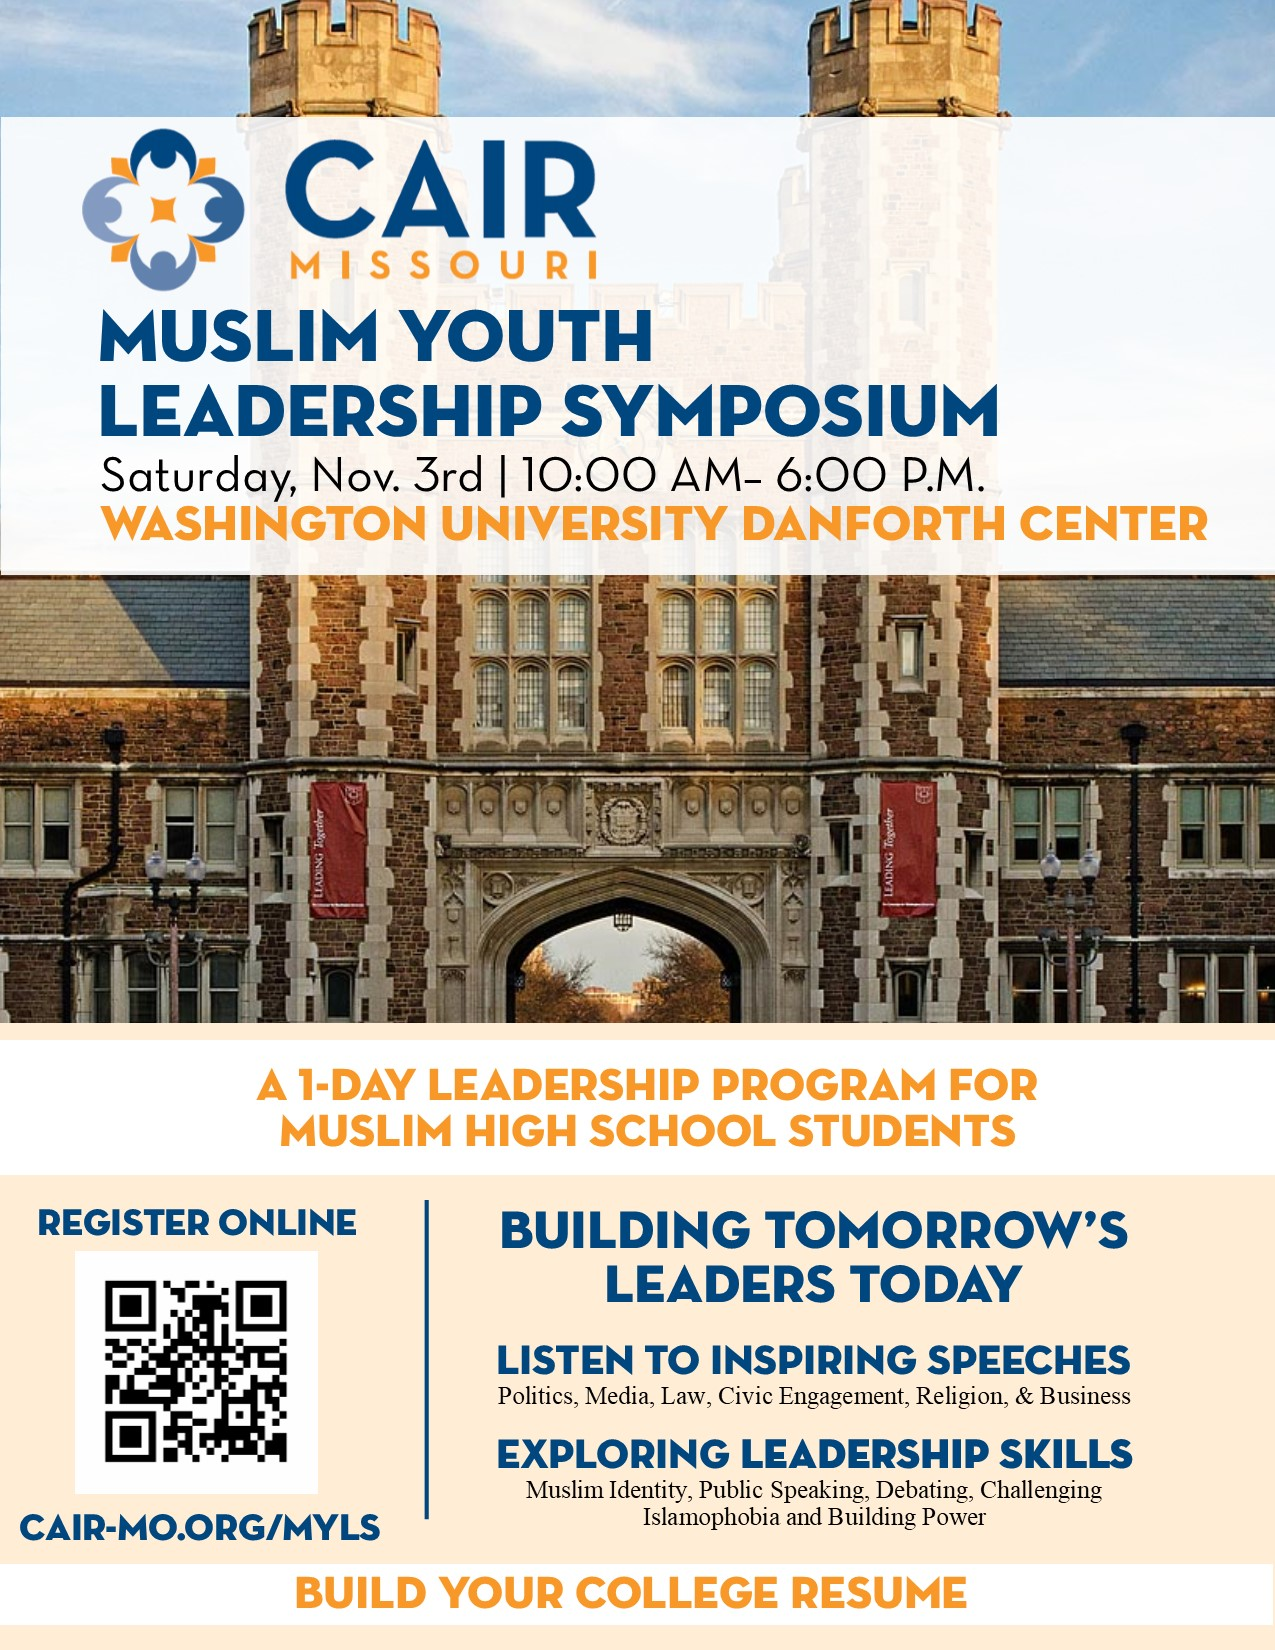 Muslim Youth Leadership Symposium CAIR Missouri Washington University